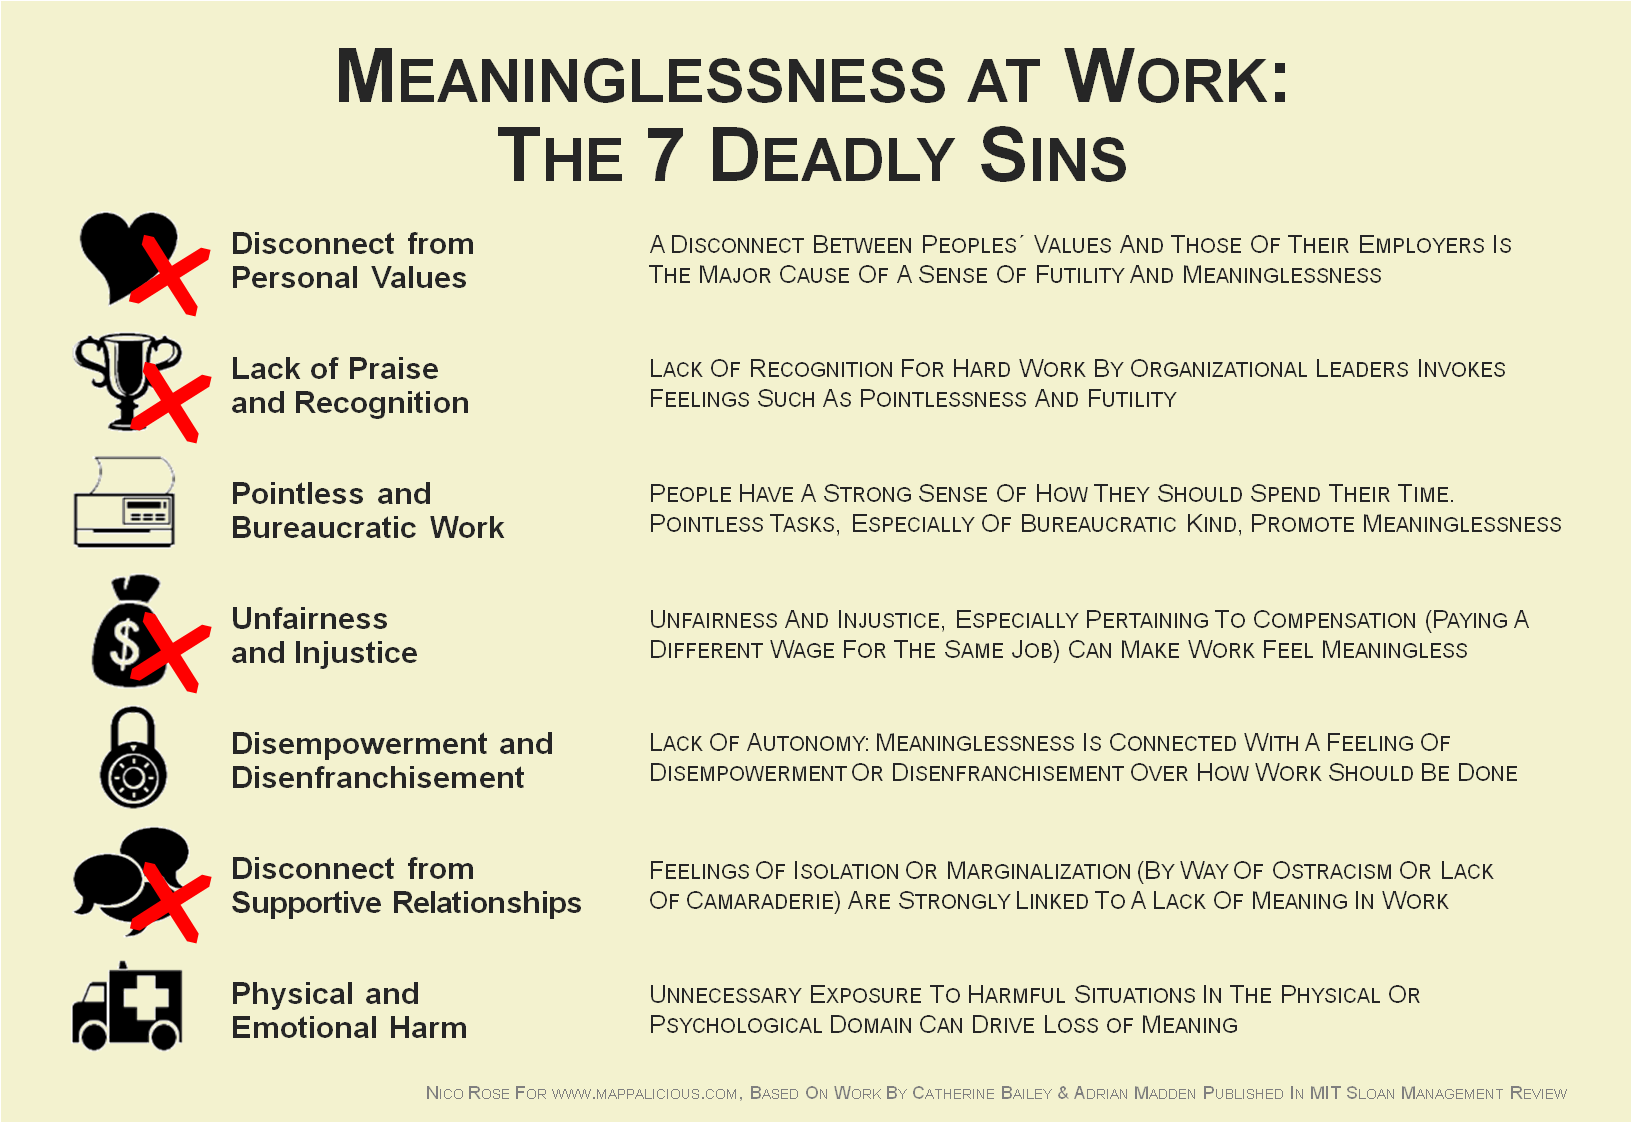 Meaninglessness at Work: The 7 Deadly Sins [Infographic